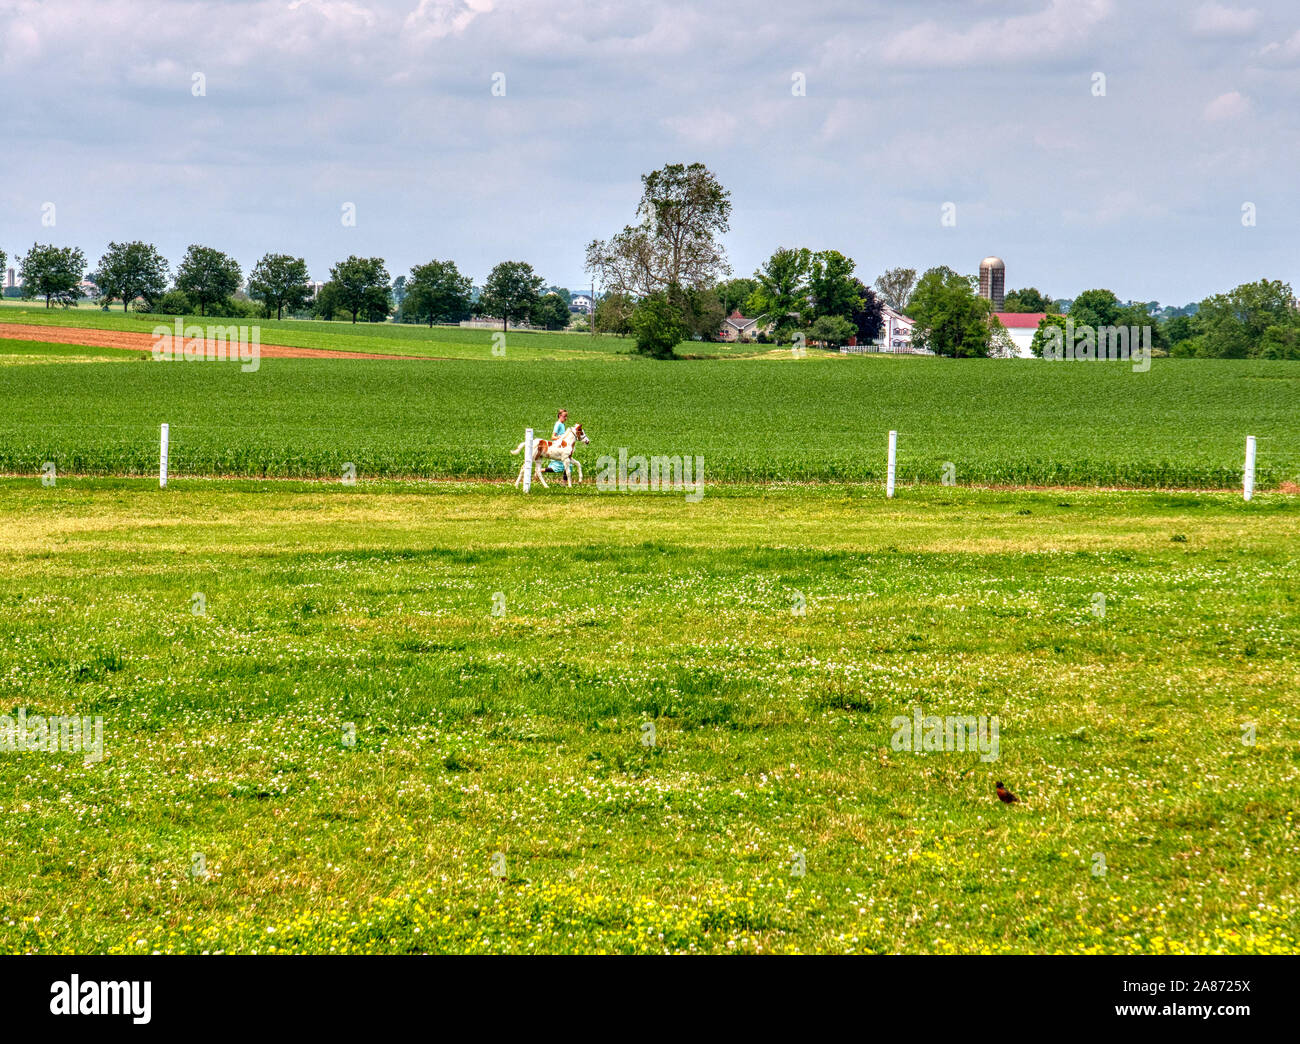 Amish Girl Training and Running with a Young Pony on a Sunny Summer Day Stock Photo